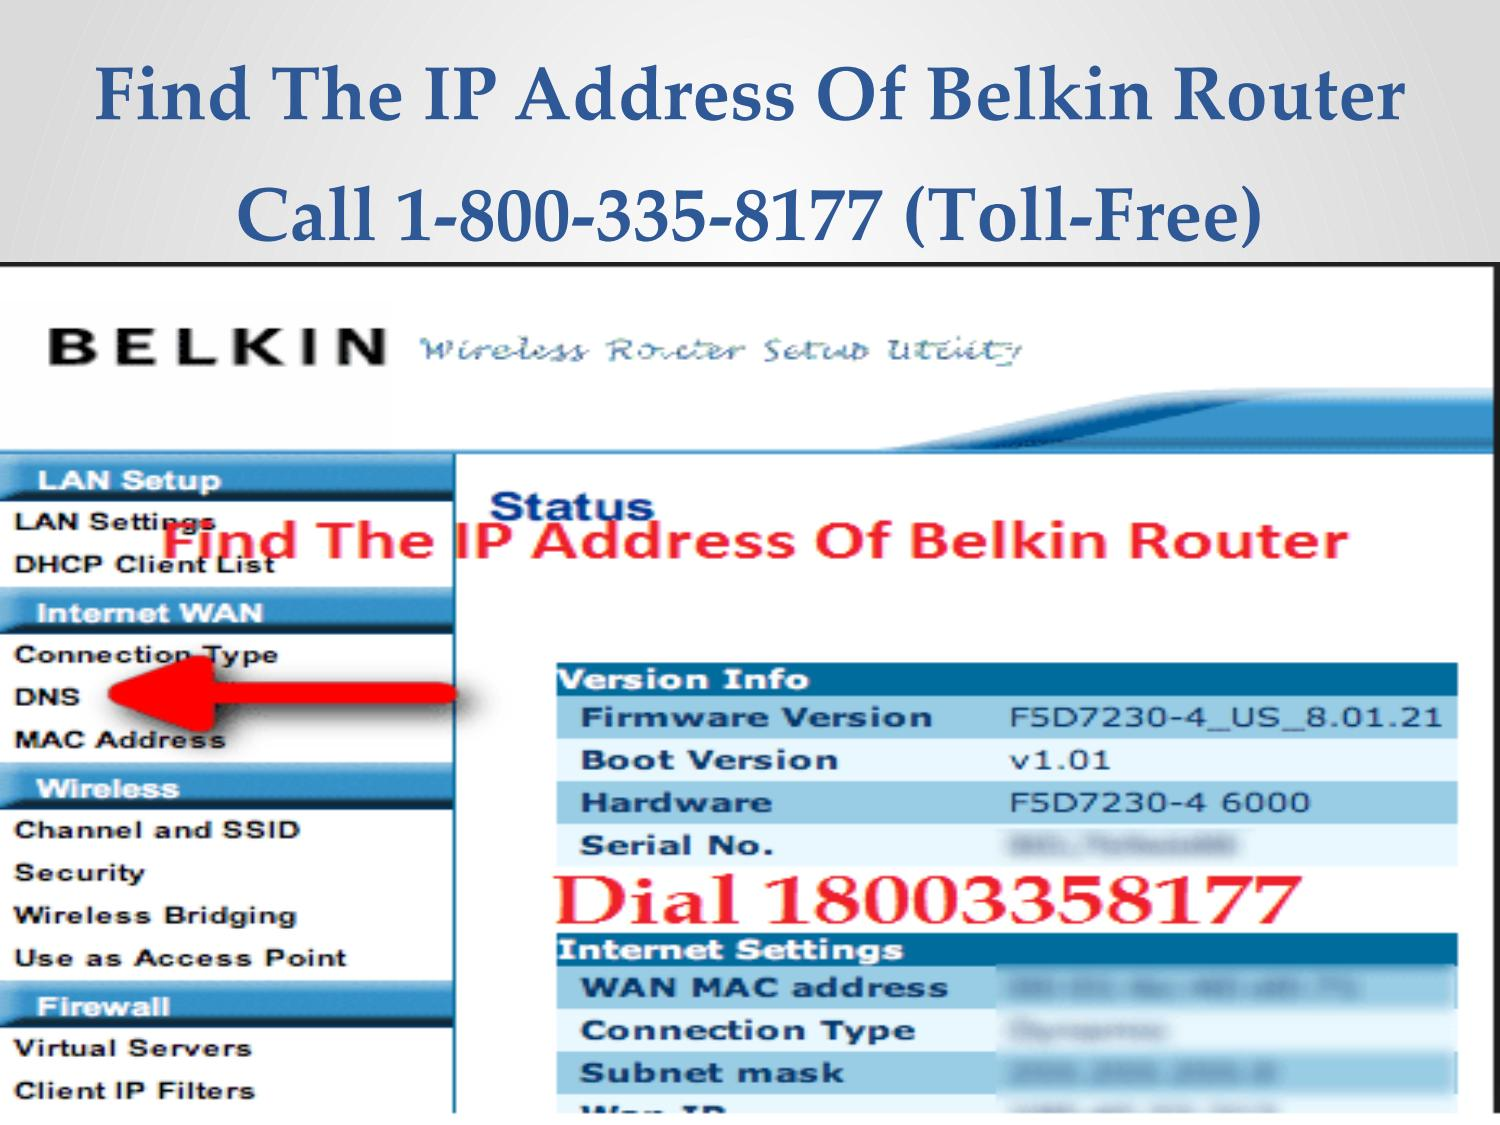 Call 18002046959 to find the ip address of belkin router by